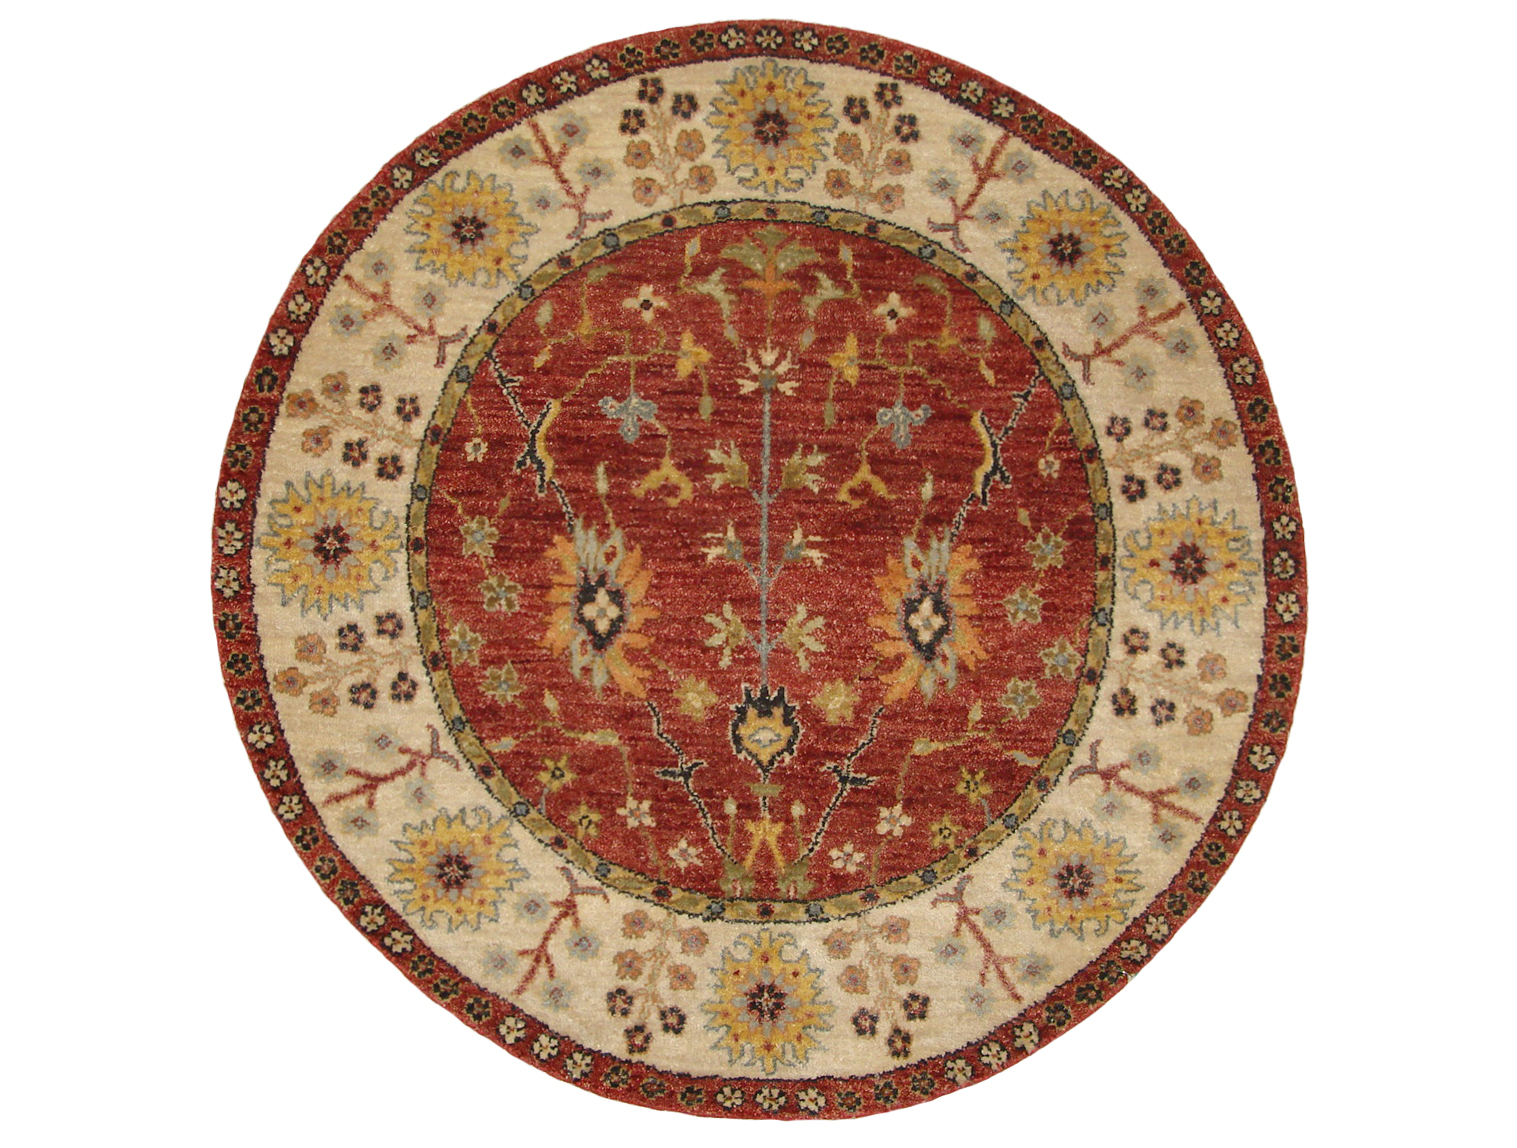 3 Round & Square Traditional Hand Knotted Wool Area Rug - MR20480